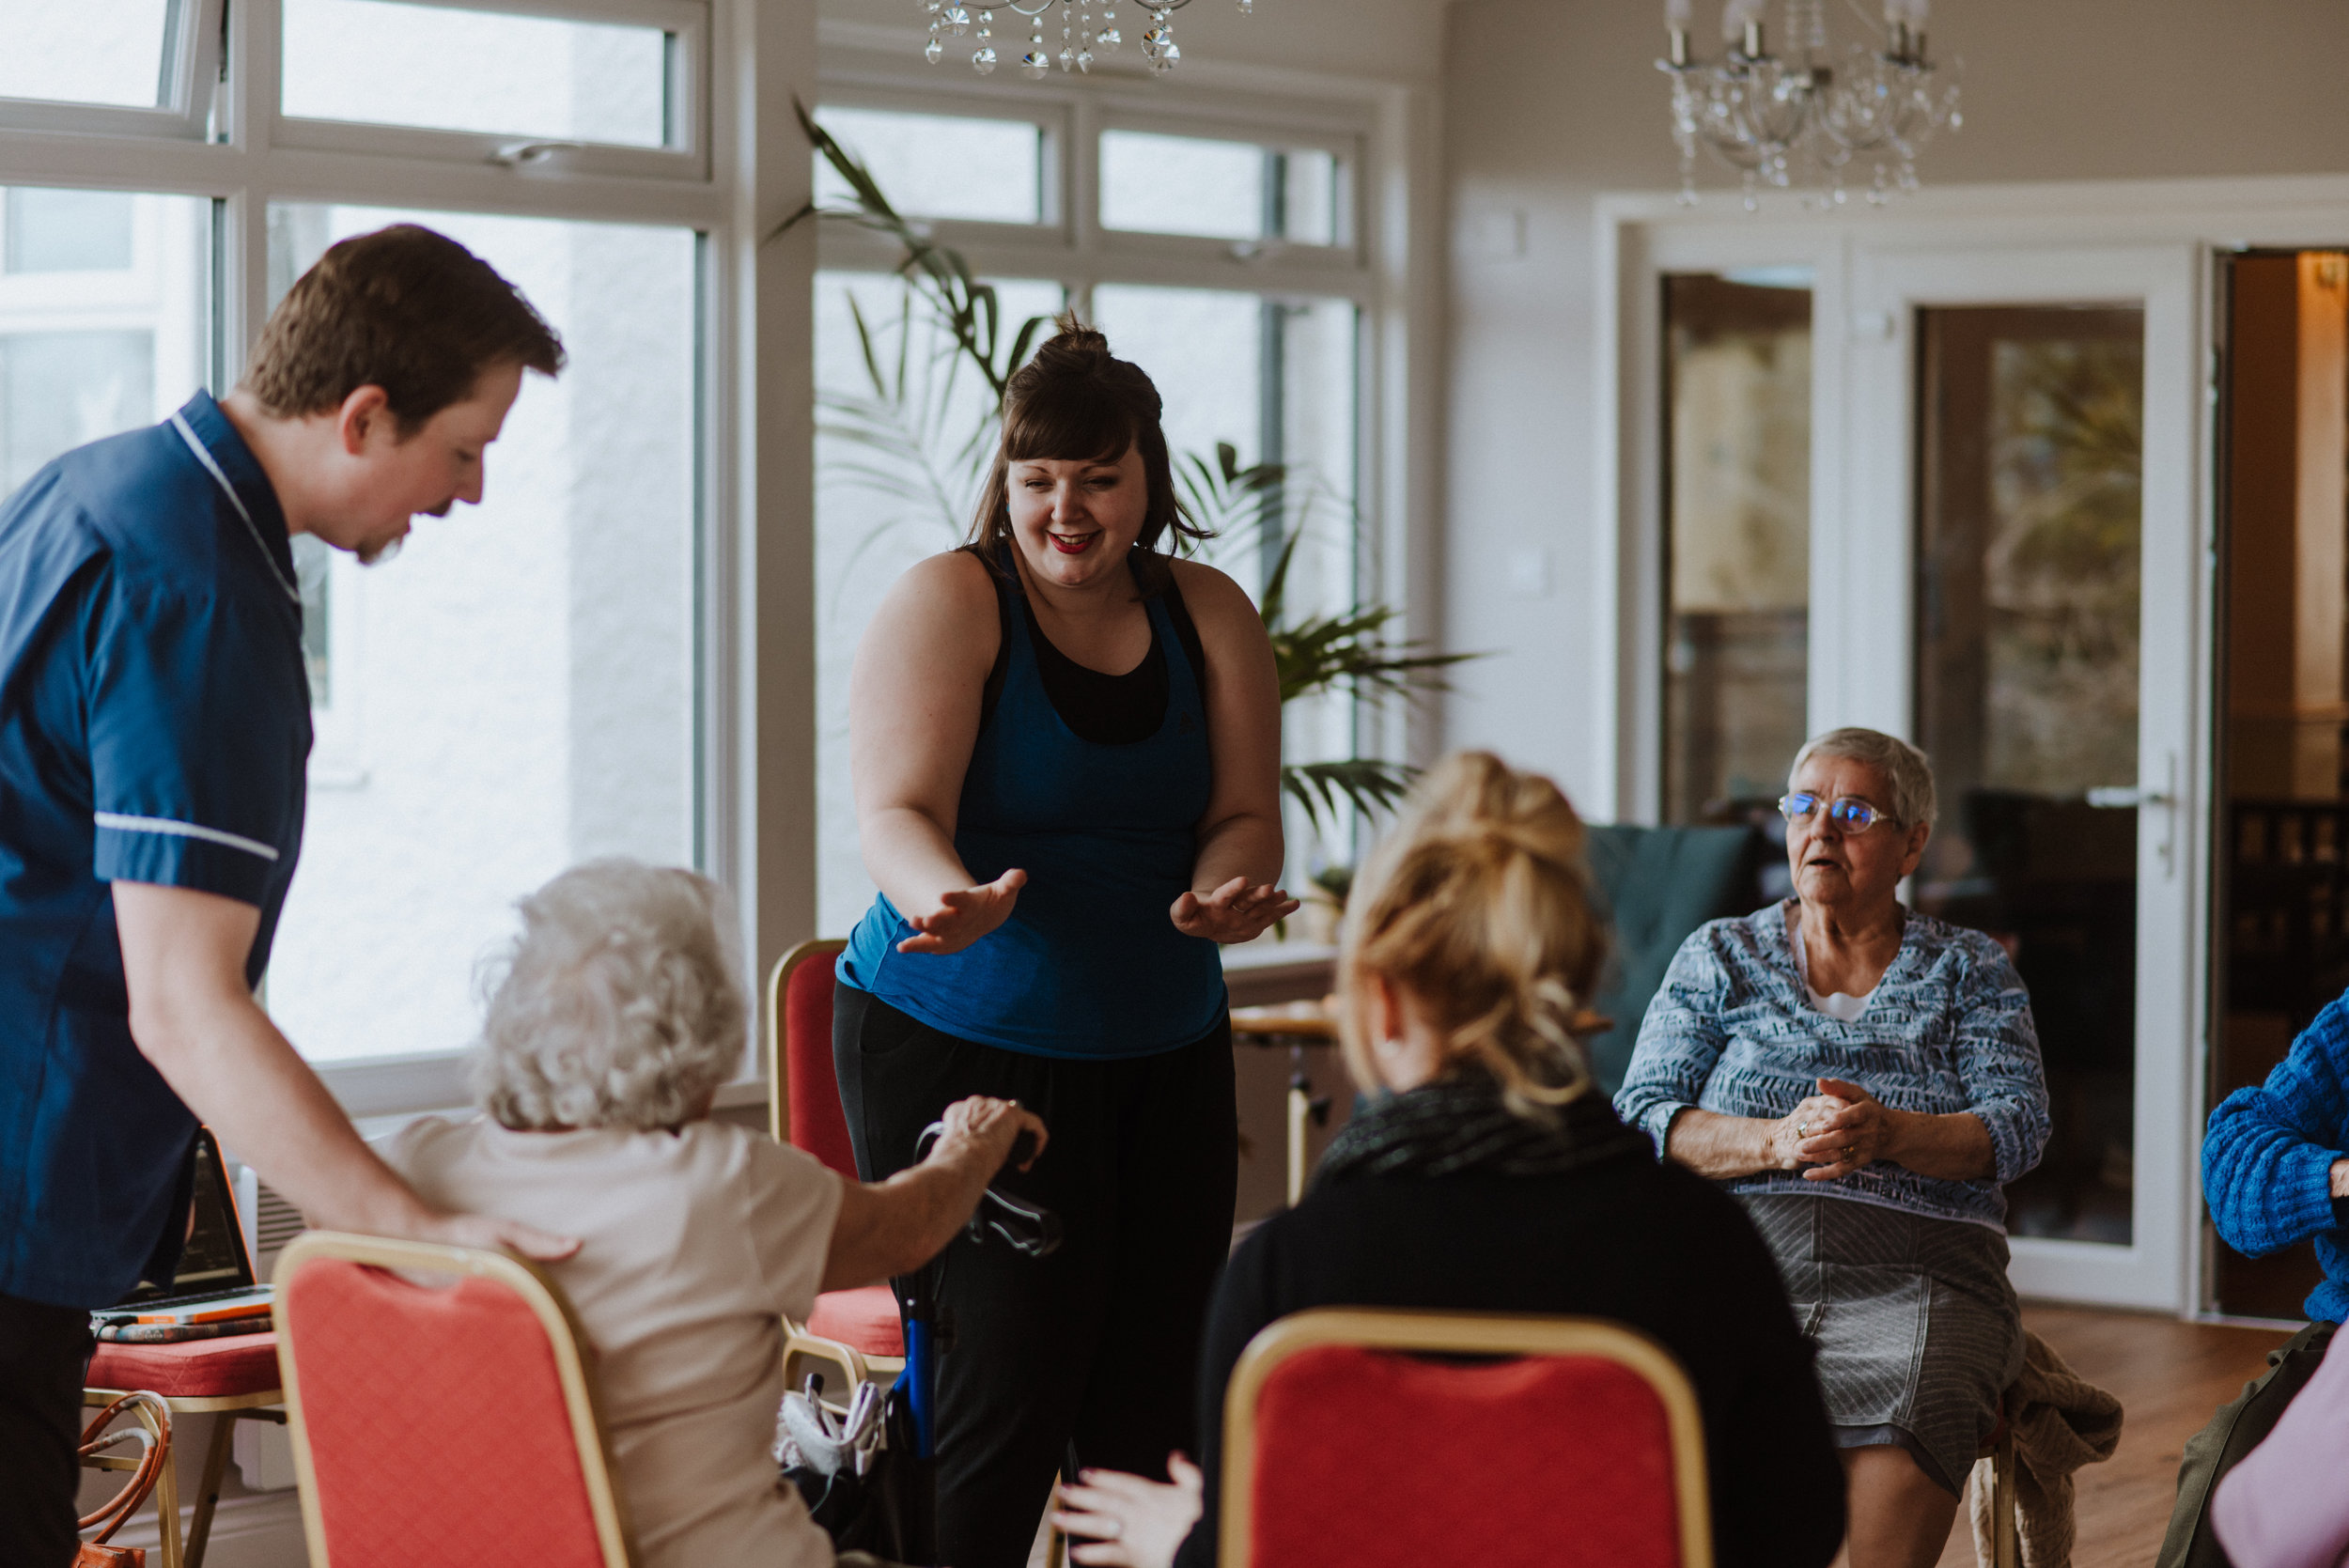 join the circle sessions promote bonds between care staff and residents